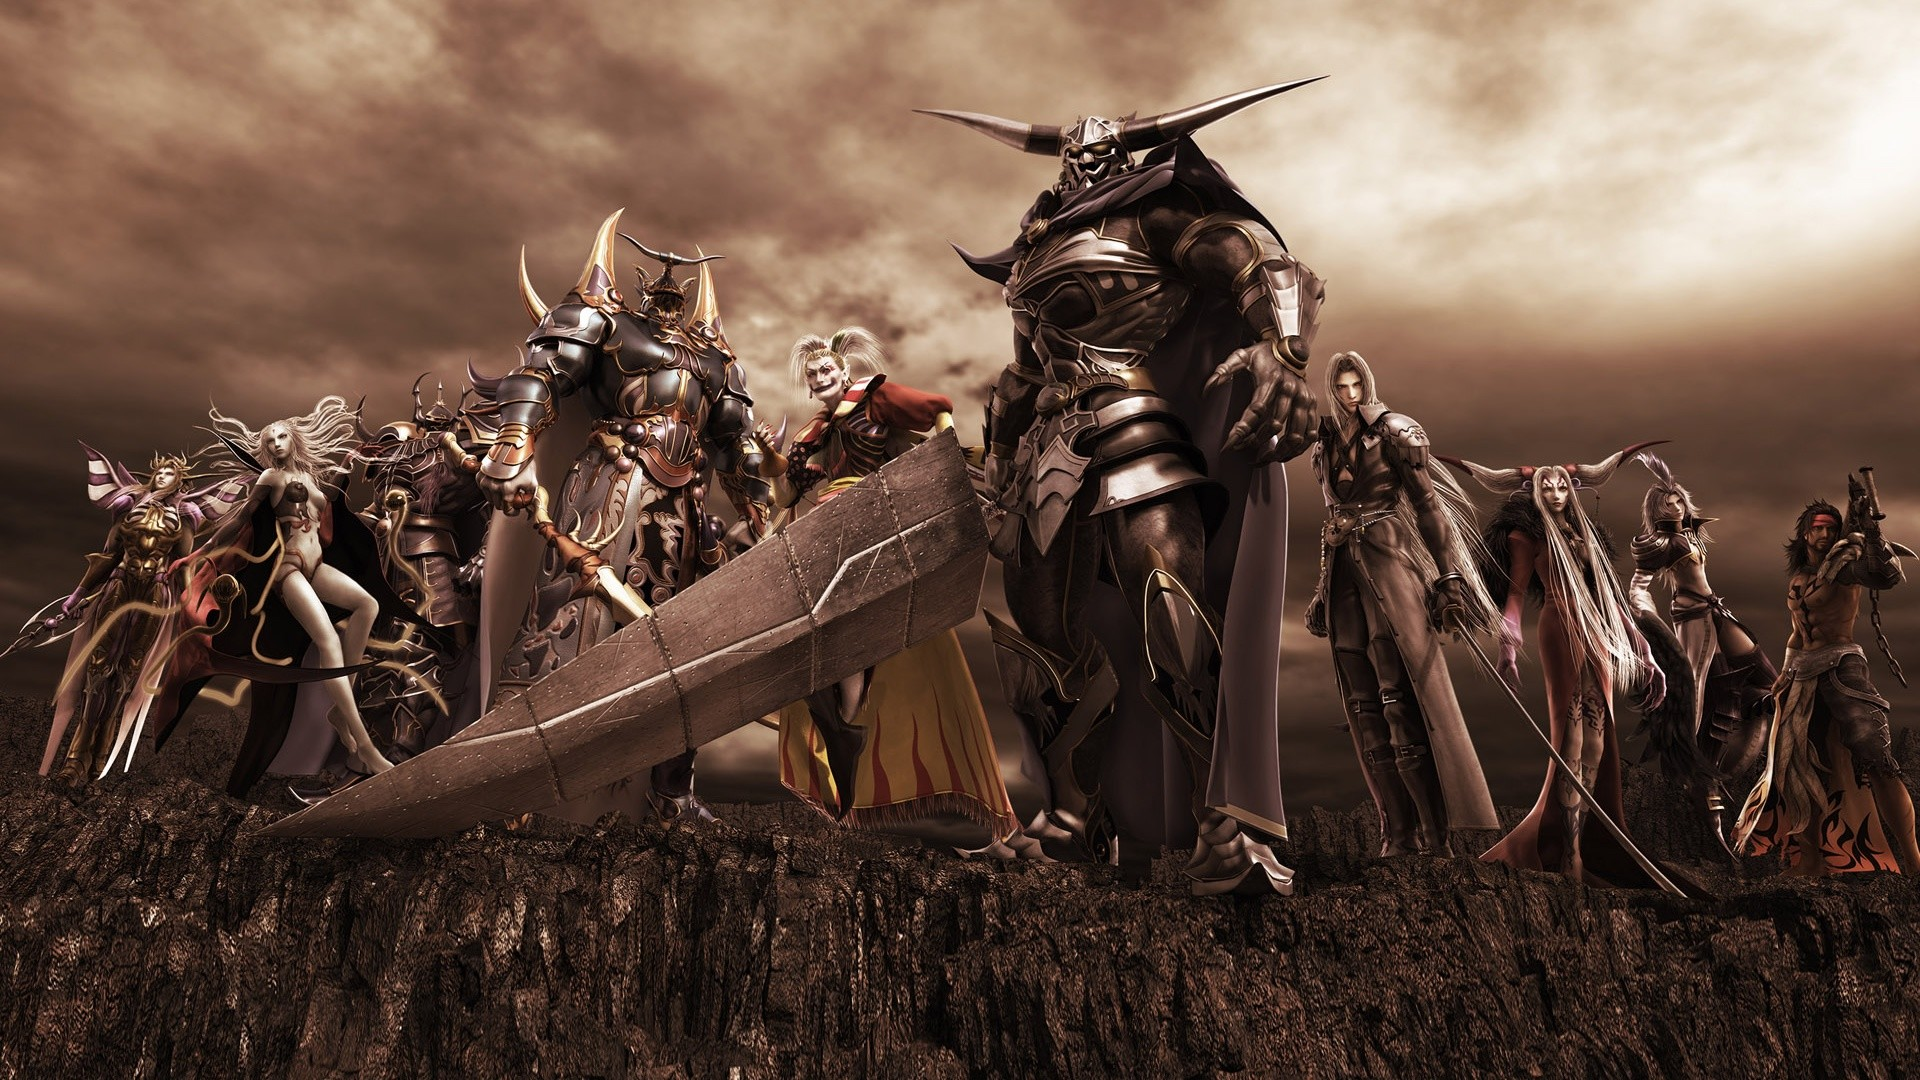 fantasy pictures wallpapers | Dissidia Final Fantasy wallpaper Fantasy HD  Wallpaper px